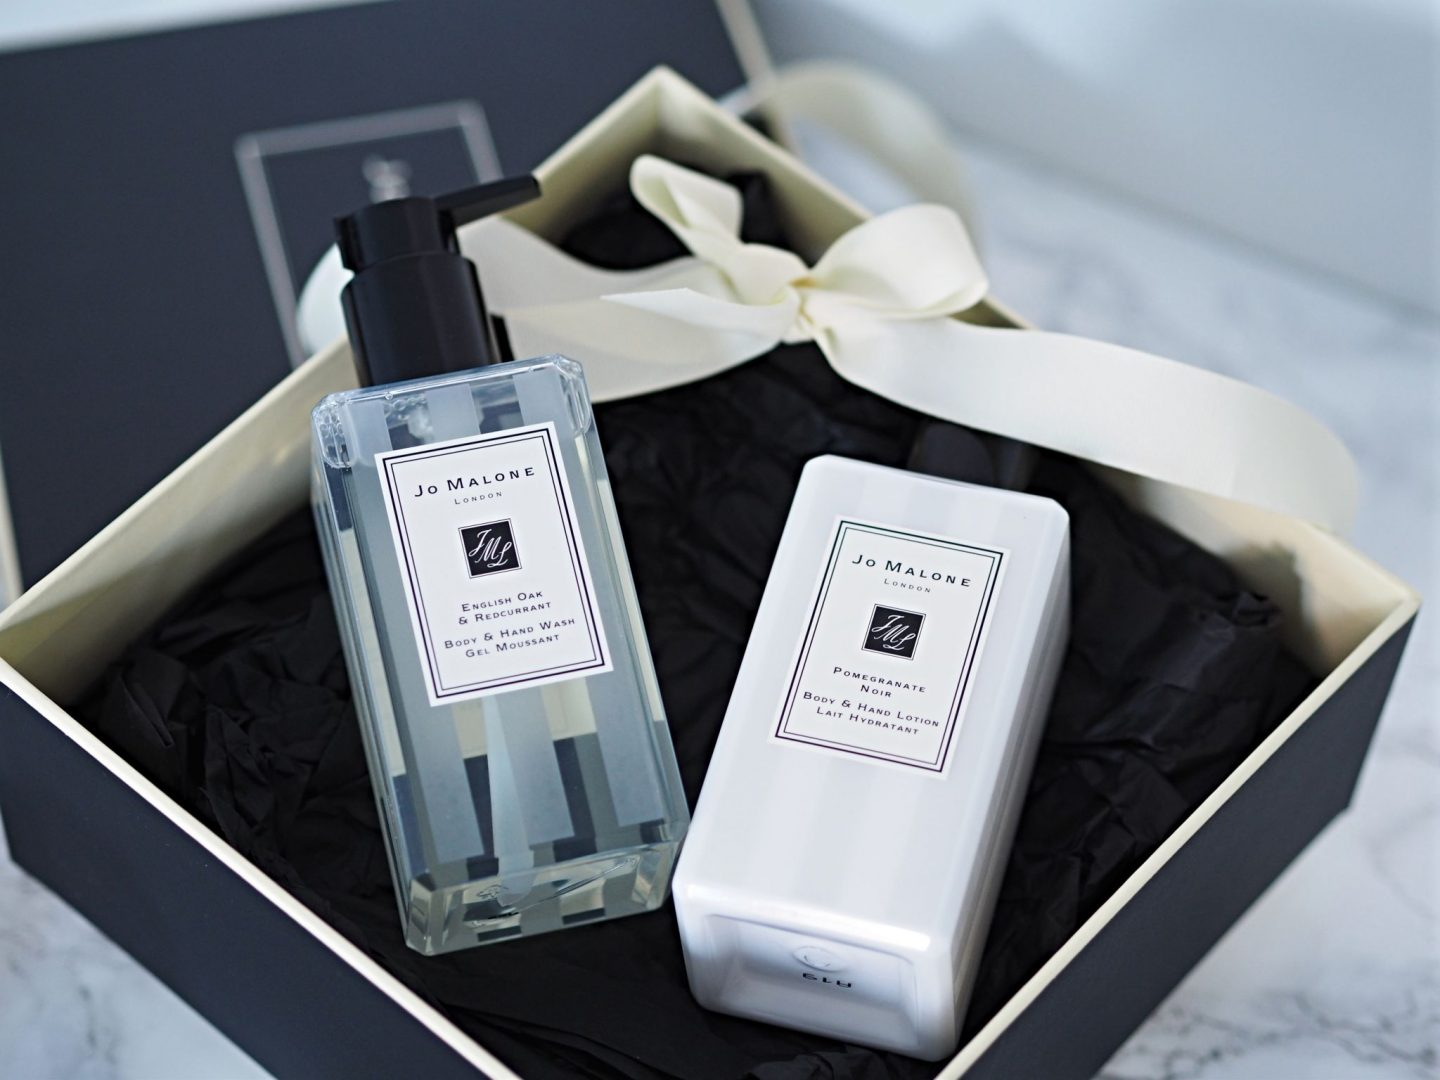 Jo Malone Pomegranate Noir Body/ Hand Lotion and English Oak & Redcurrant Body/ Hand Wash